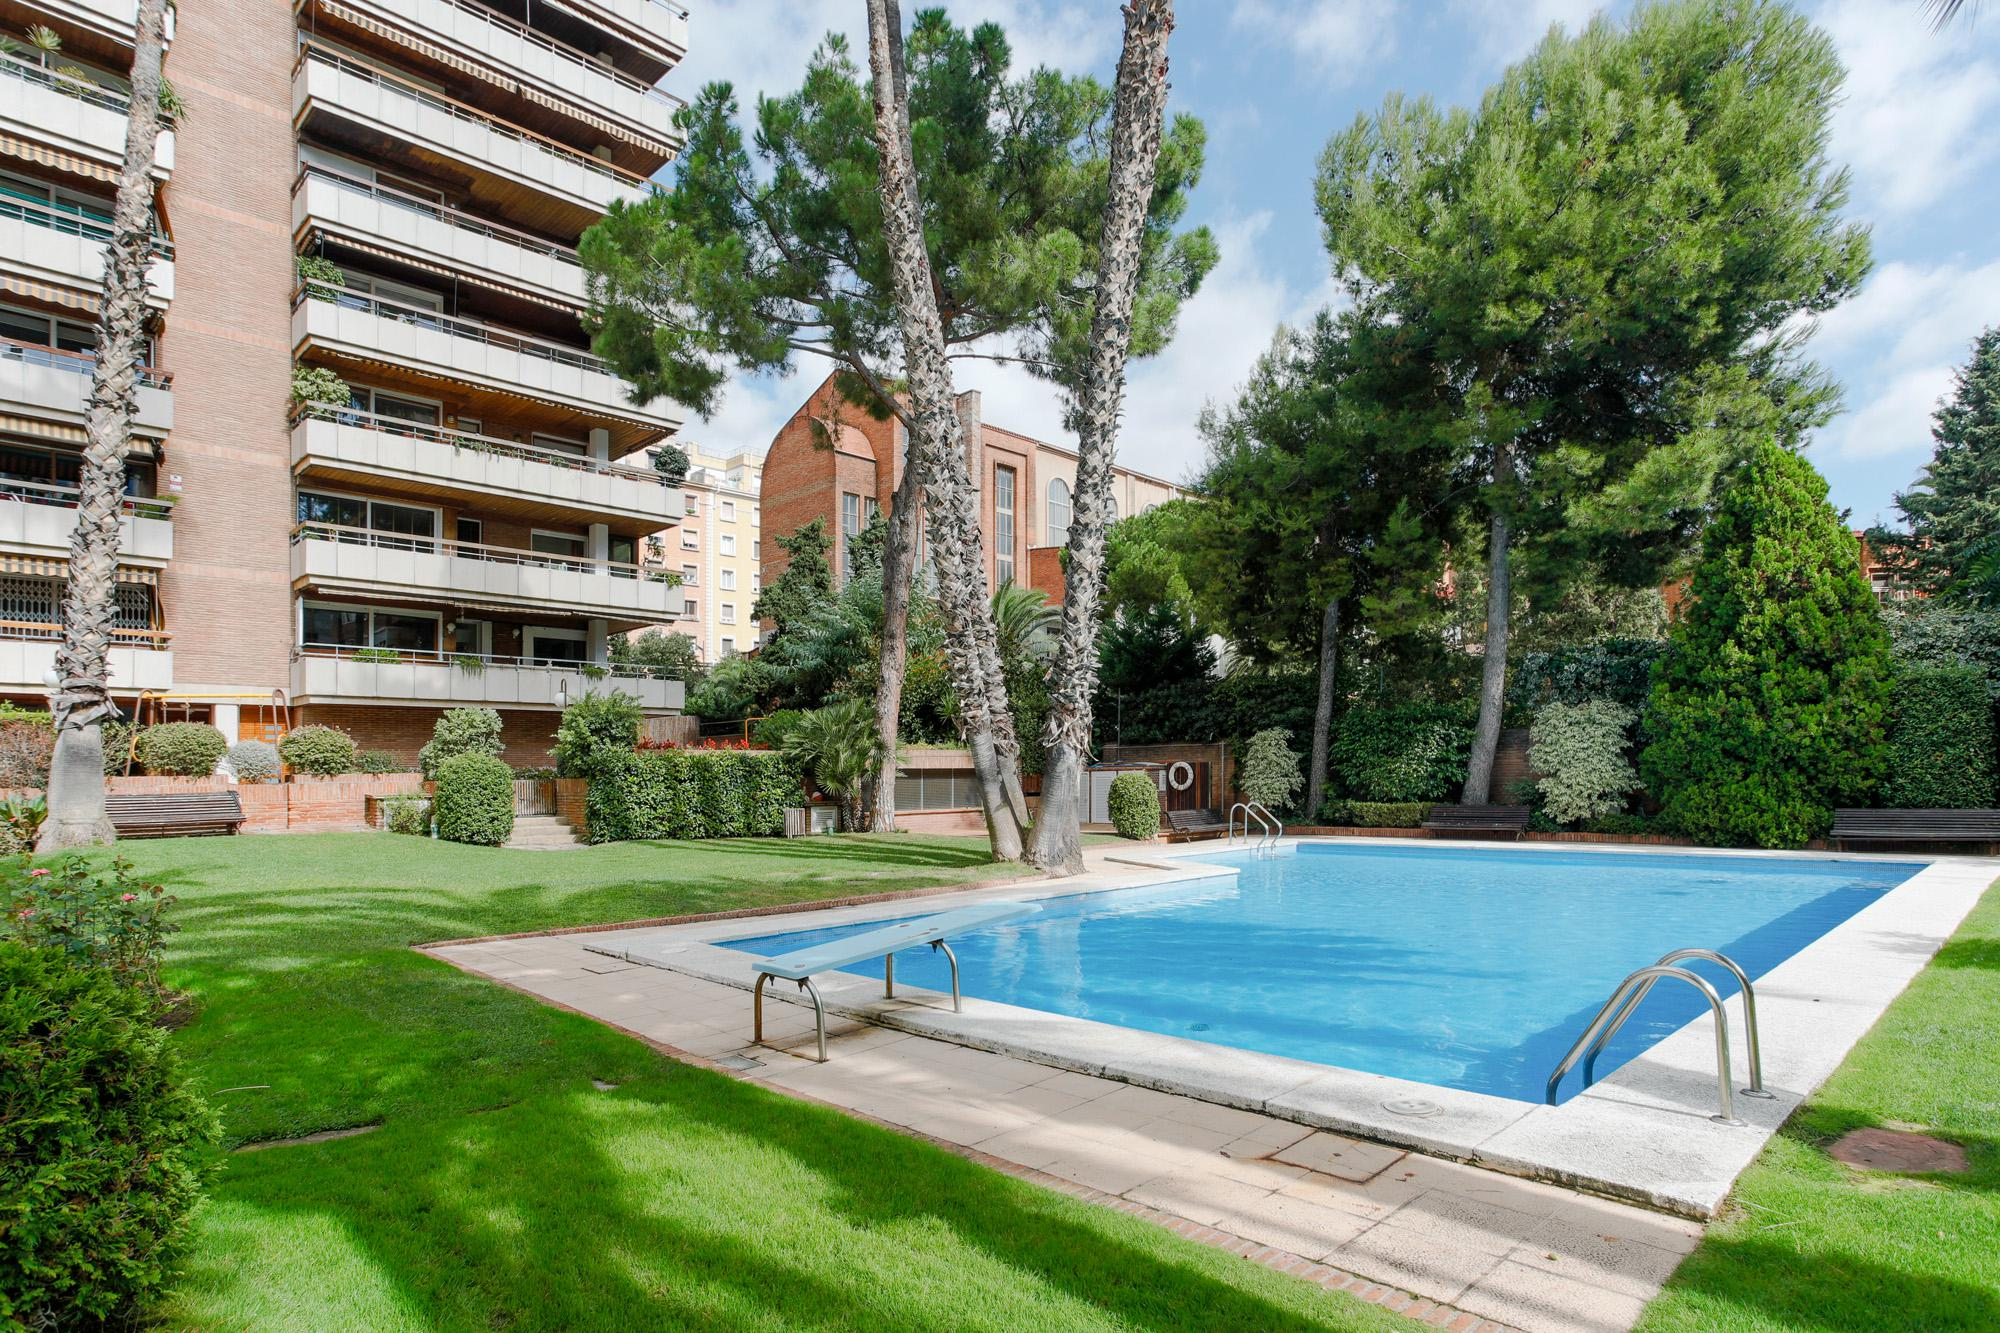 232863 Apartment for sale in Les Corts, Pedralbes 29